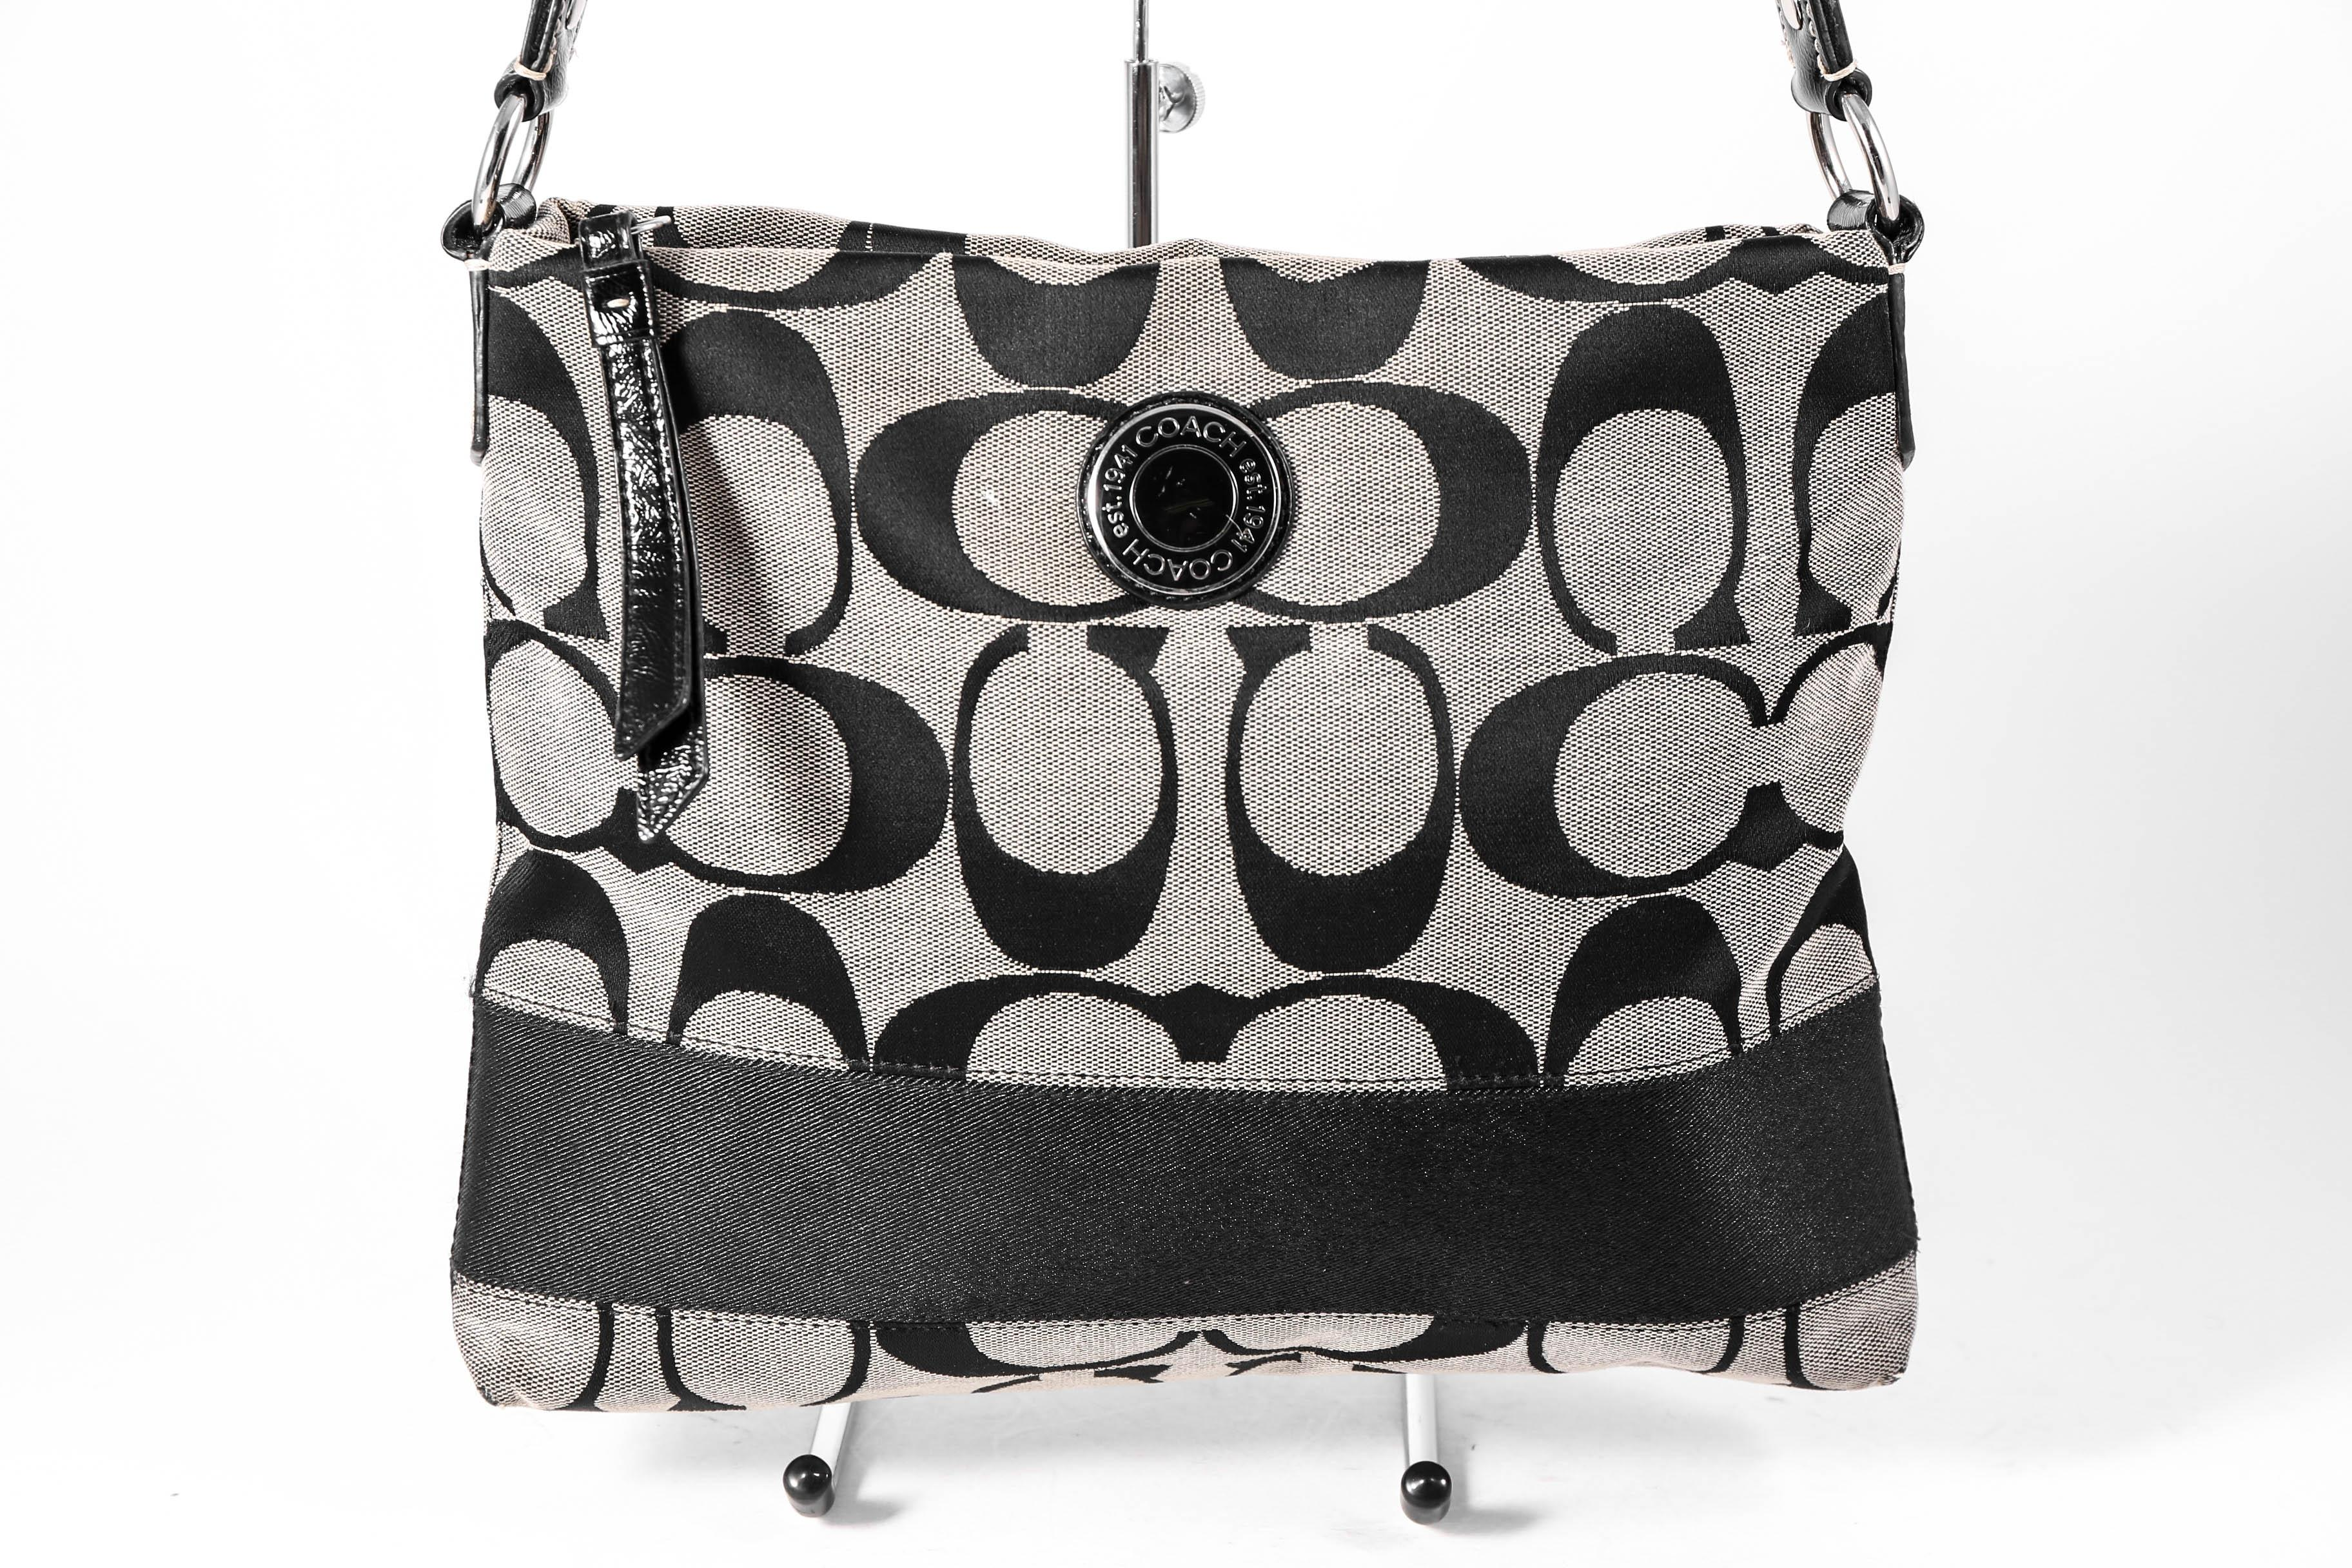 black and gray coach bag 7o03  Coach Crossbody Canvas Monogram Shoulder Bag